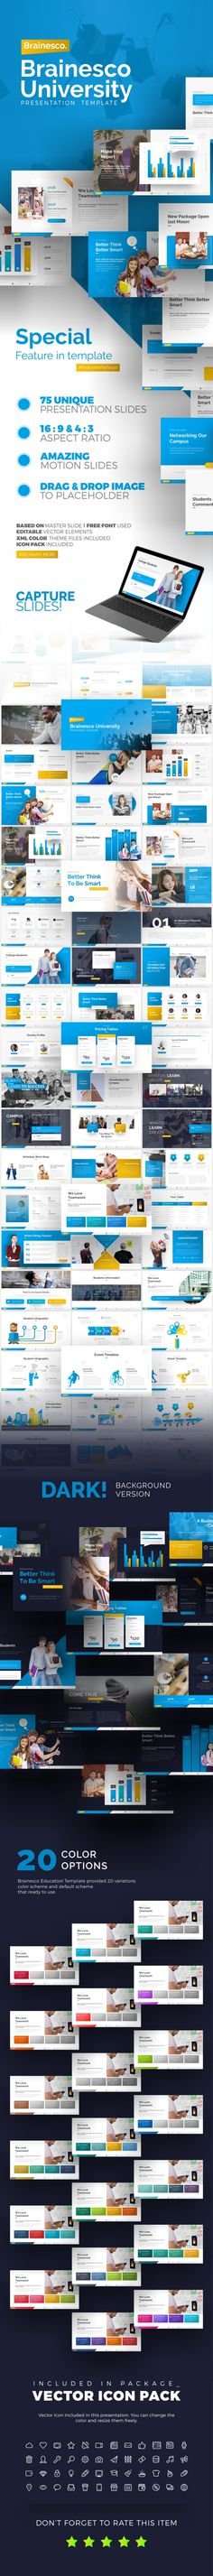 Buy Brainesco Education PowerPoint Presentation Template by BrandEarth on GraphicRiver. Overview: Flat, Clean, Minimalist, Elegant and Flexible PowerPoint Presentation Template, perfect for presentation c. Marketing Presentation, Presentation Design, Project Presentation, Powerpoint Presentation Templates, Powerpoint Presentations, Ppt Template, Office Themes, College Courses, Wordpress Plugins